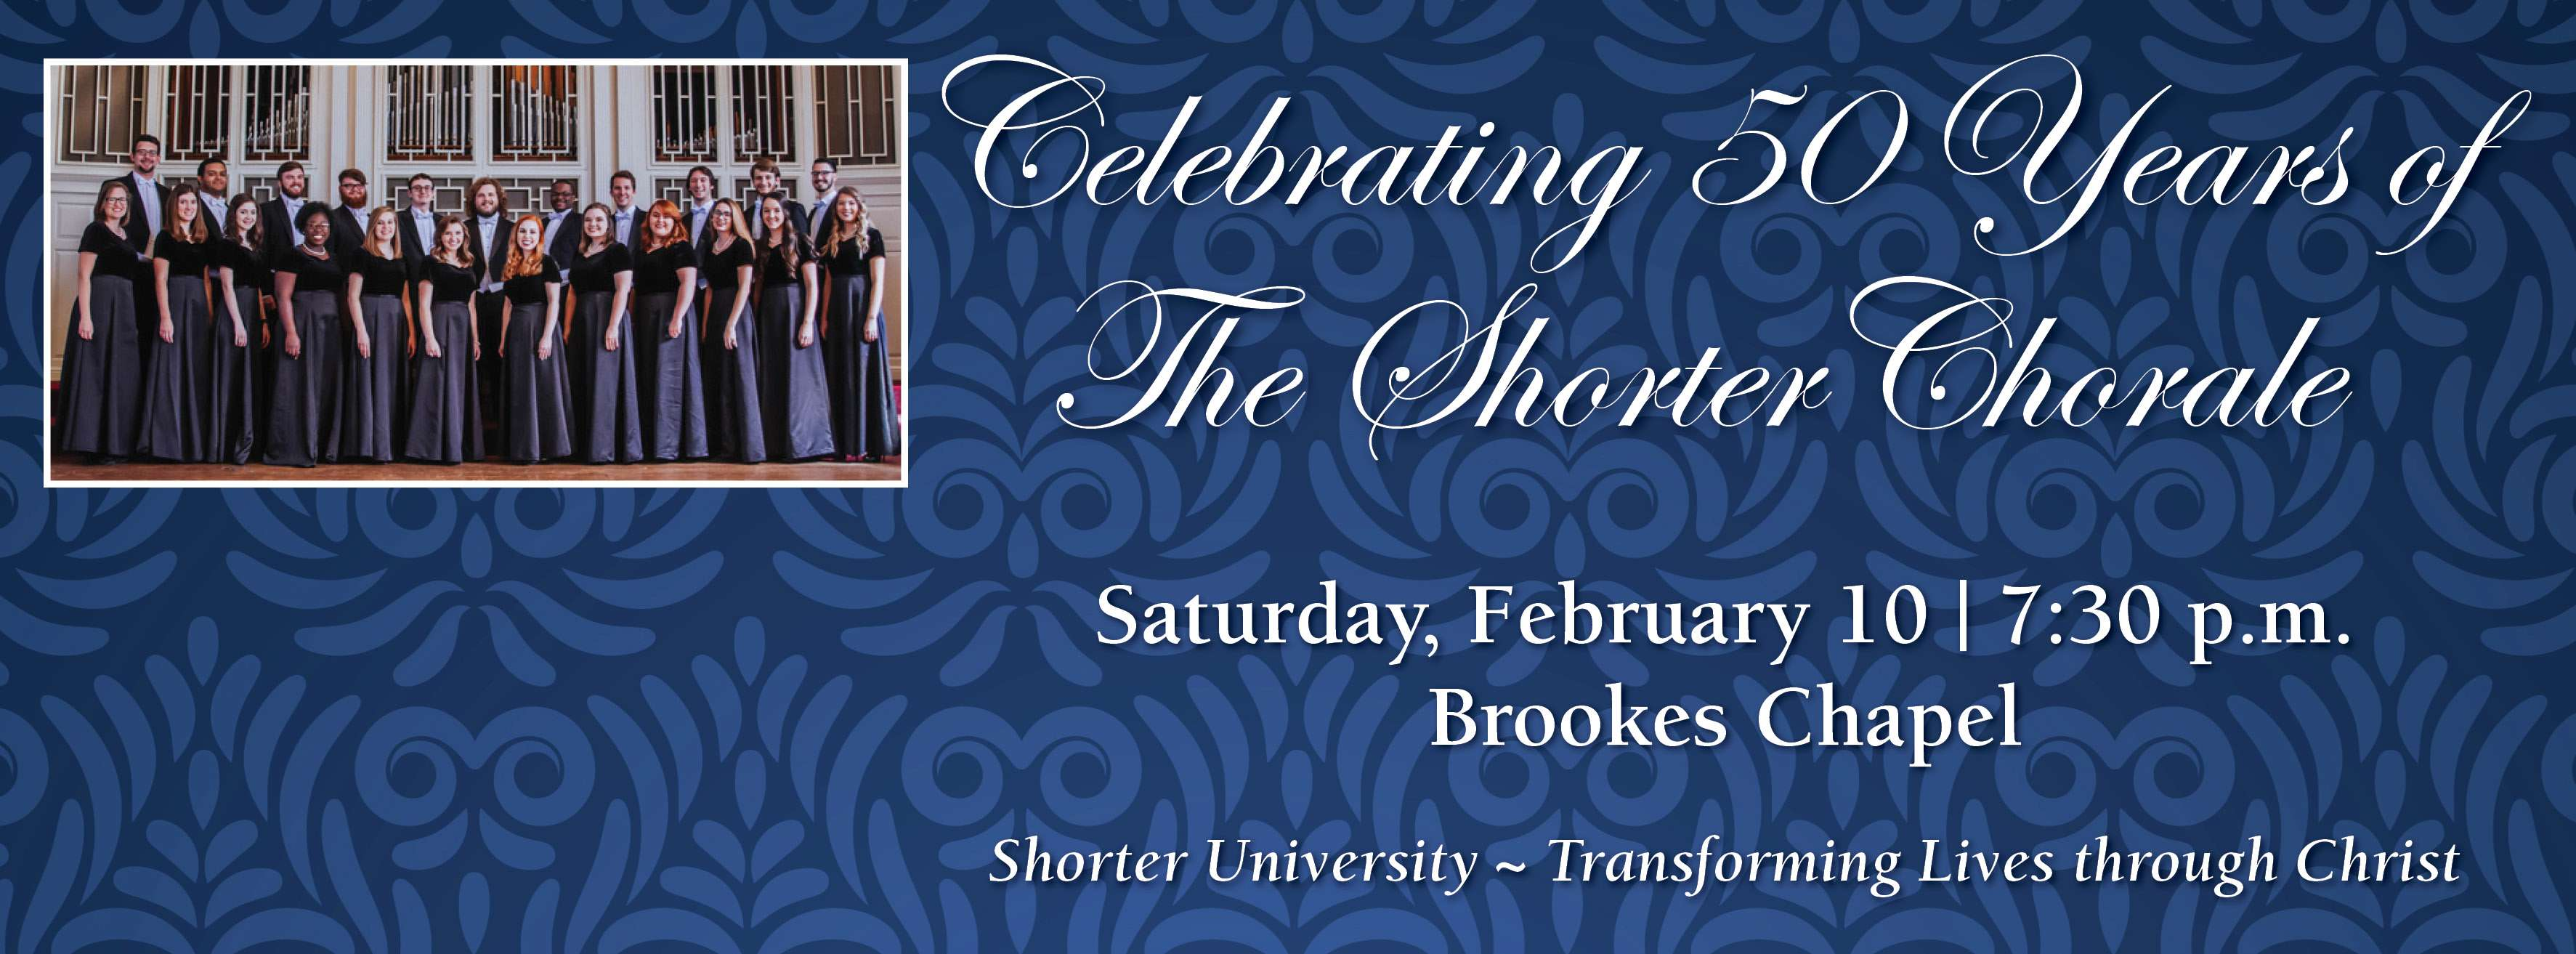 Feb. 10 Concert to Celebrate 50 Years of The Shorter Chorale